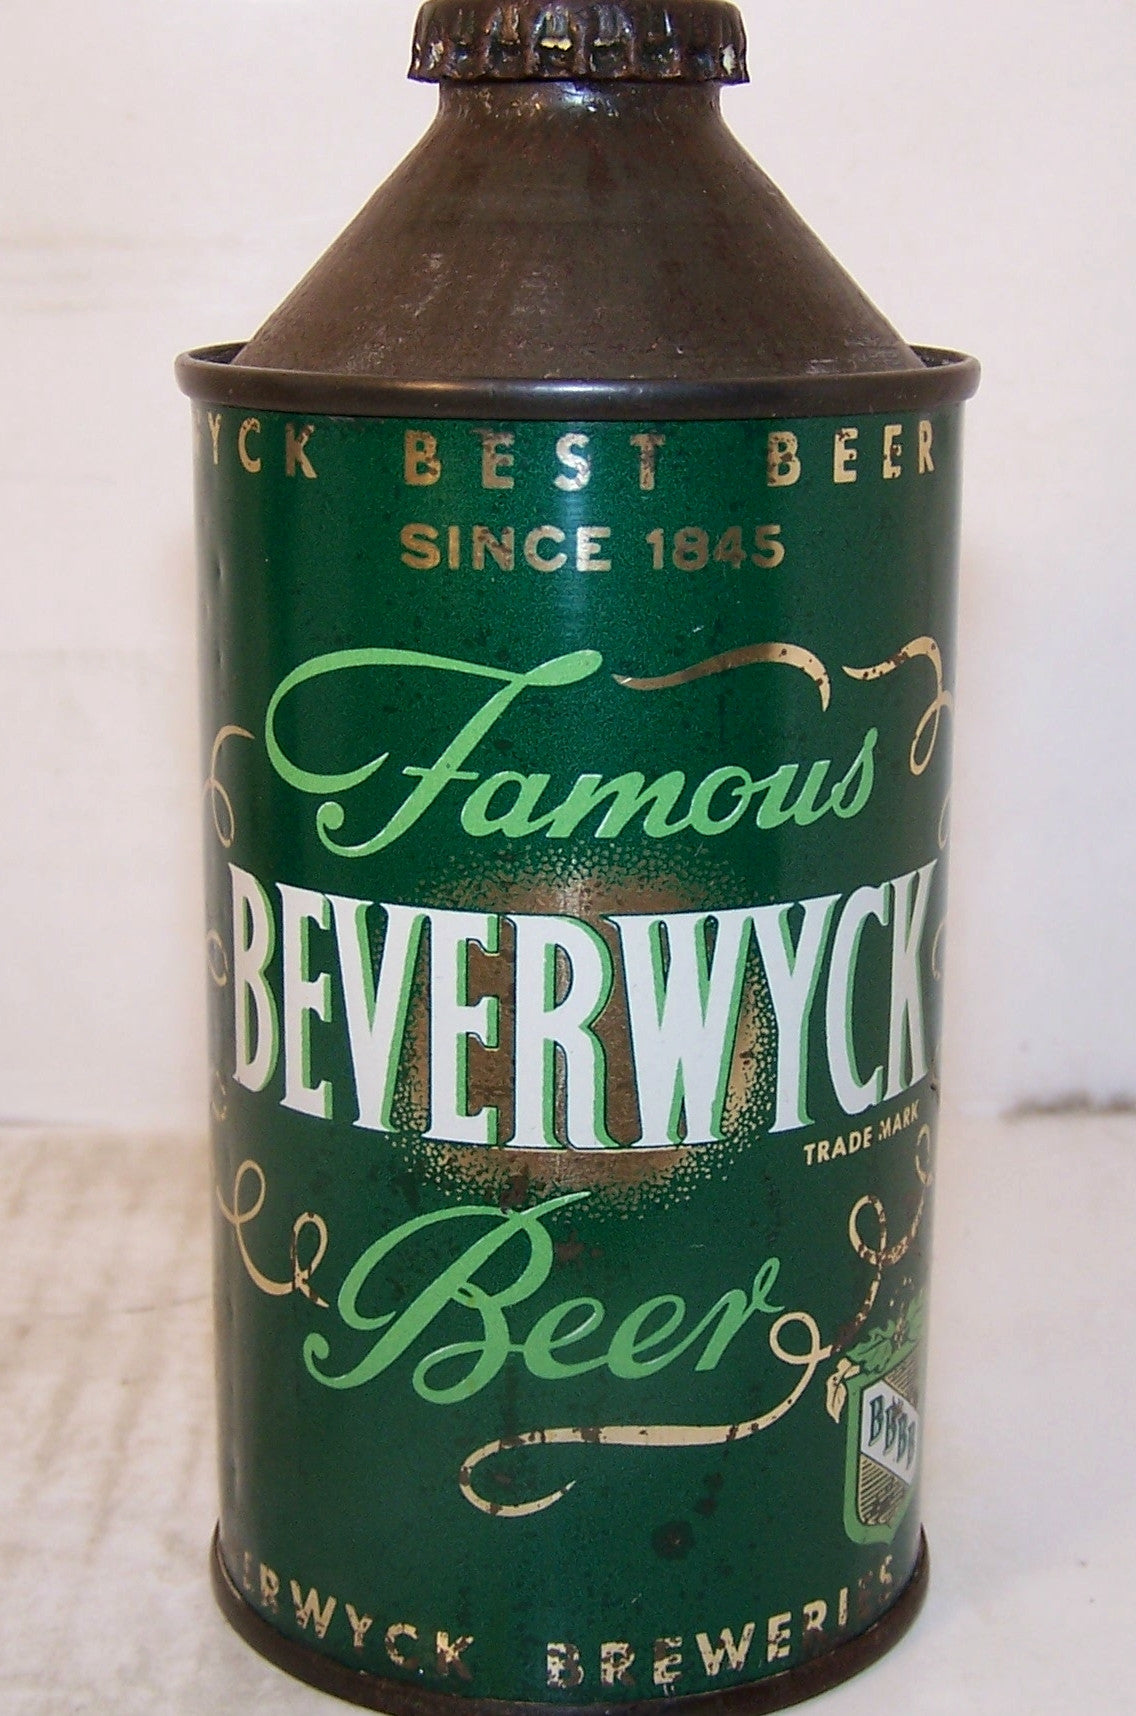 Beverwyck Famous Beer, USBC 152-14, Grade 1/1- Sold on 05/21/16